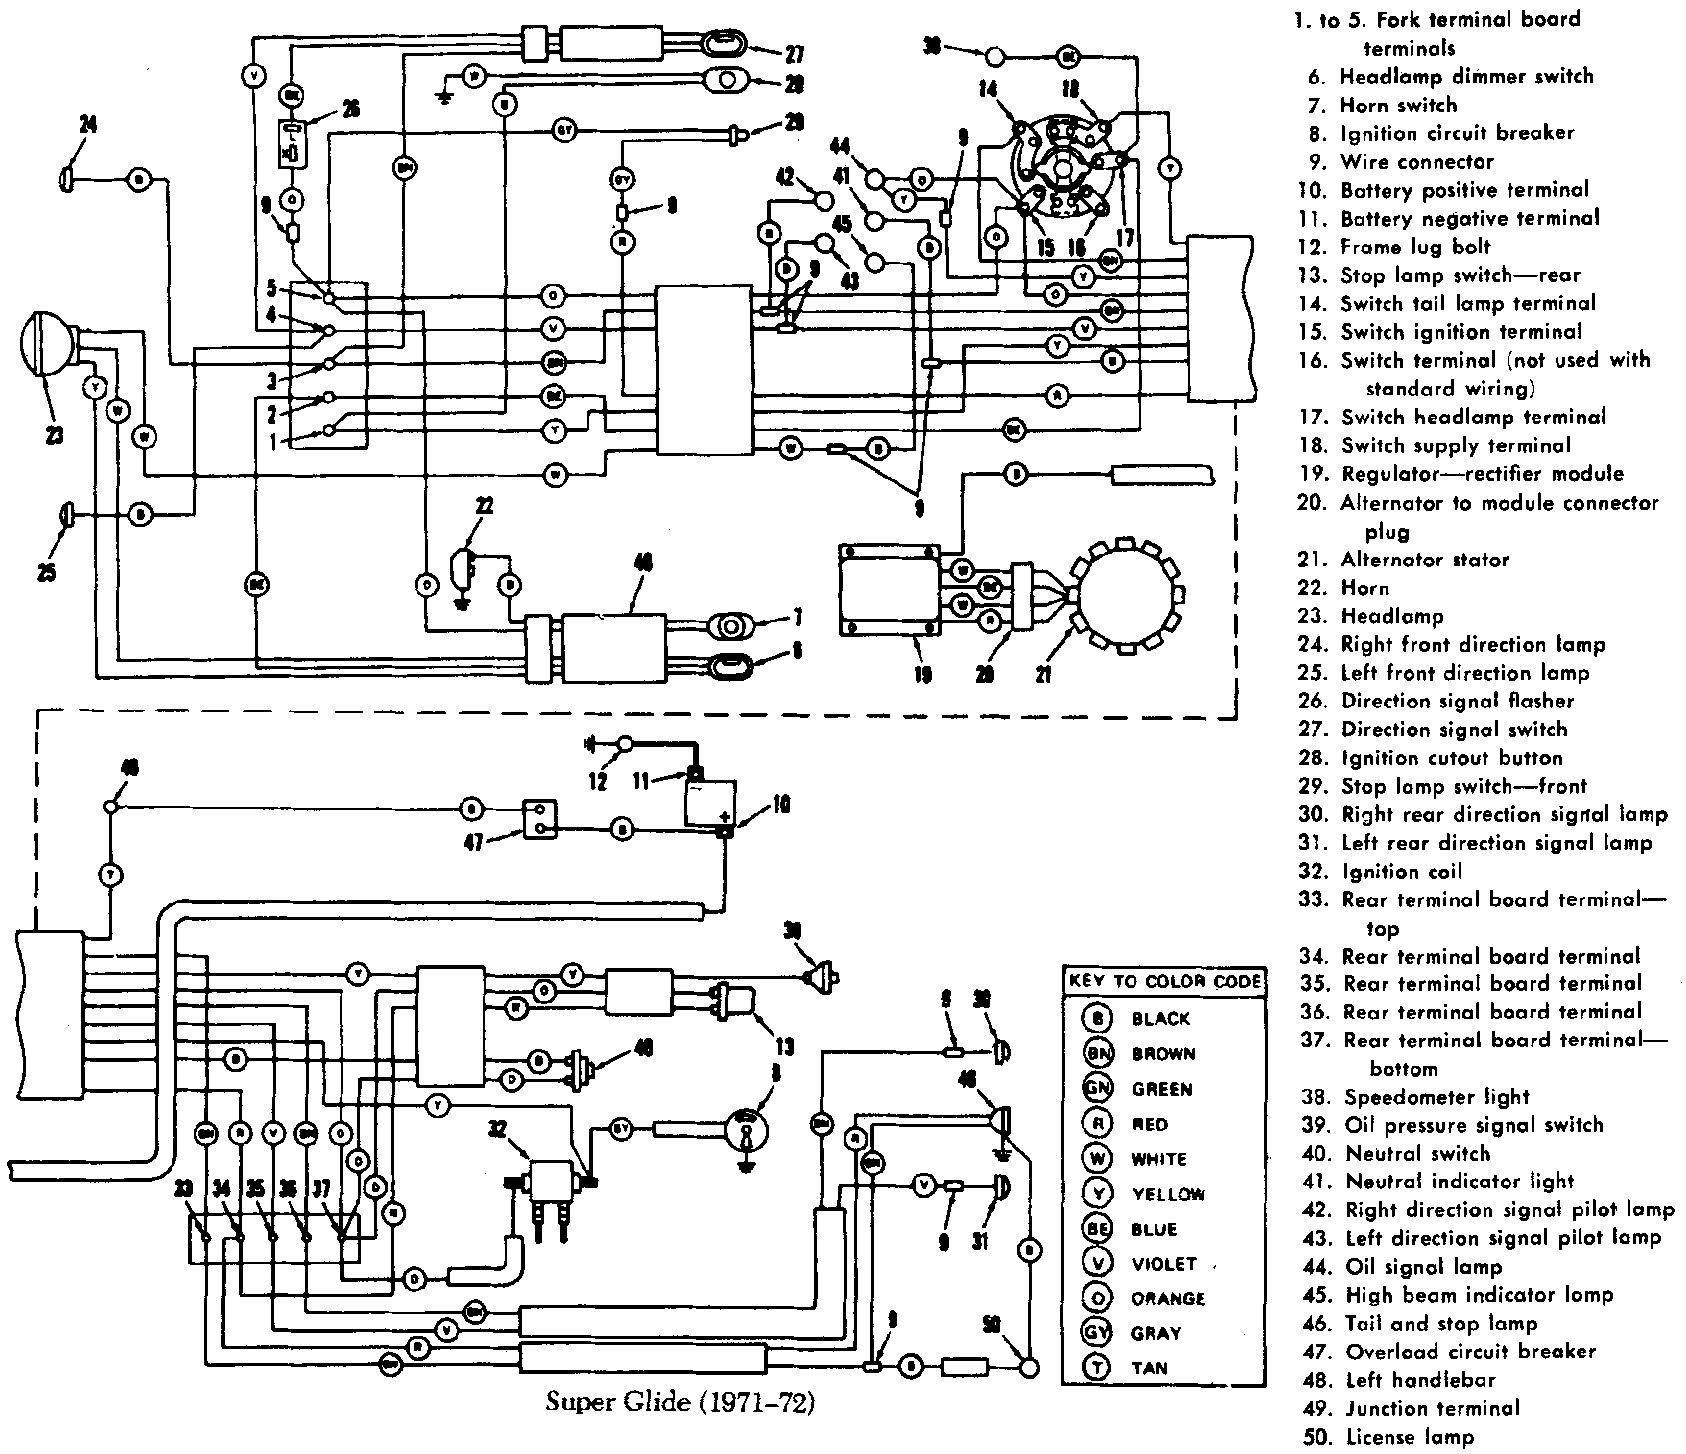 hight resolution of 1998 harley sportster 1200 wiring diagram house wiring diagram harley davidson golf cart wiring diagram